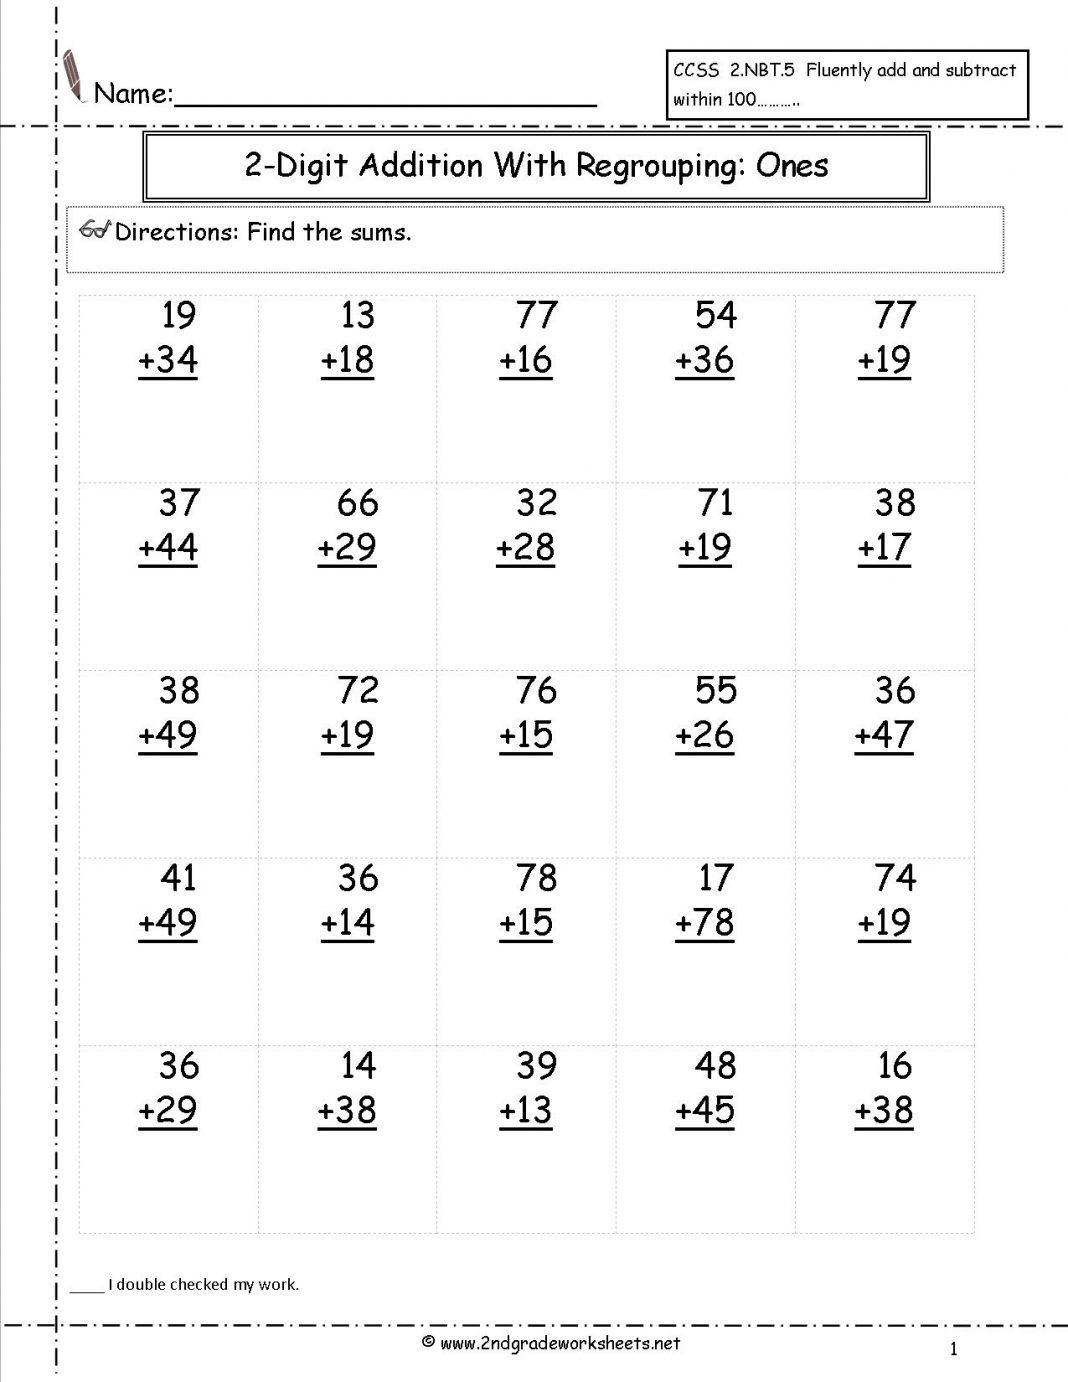 40 Innovative Second Grade Math Worksheets Design Ideas